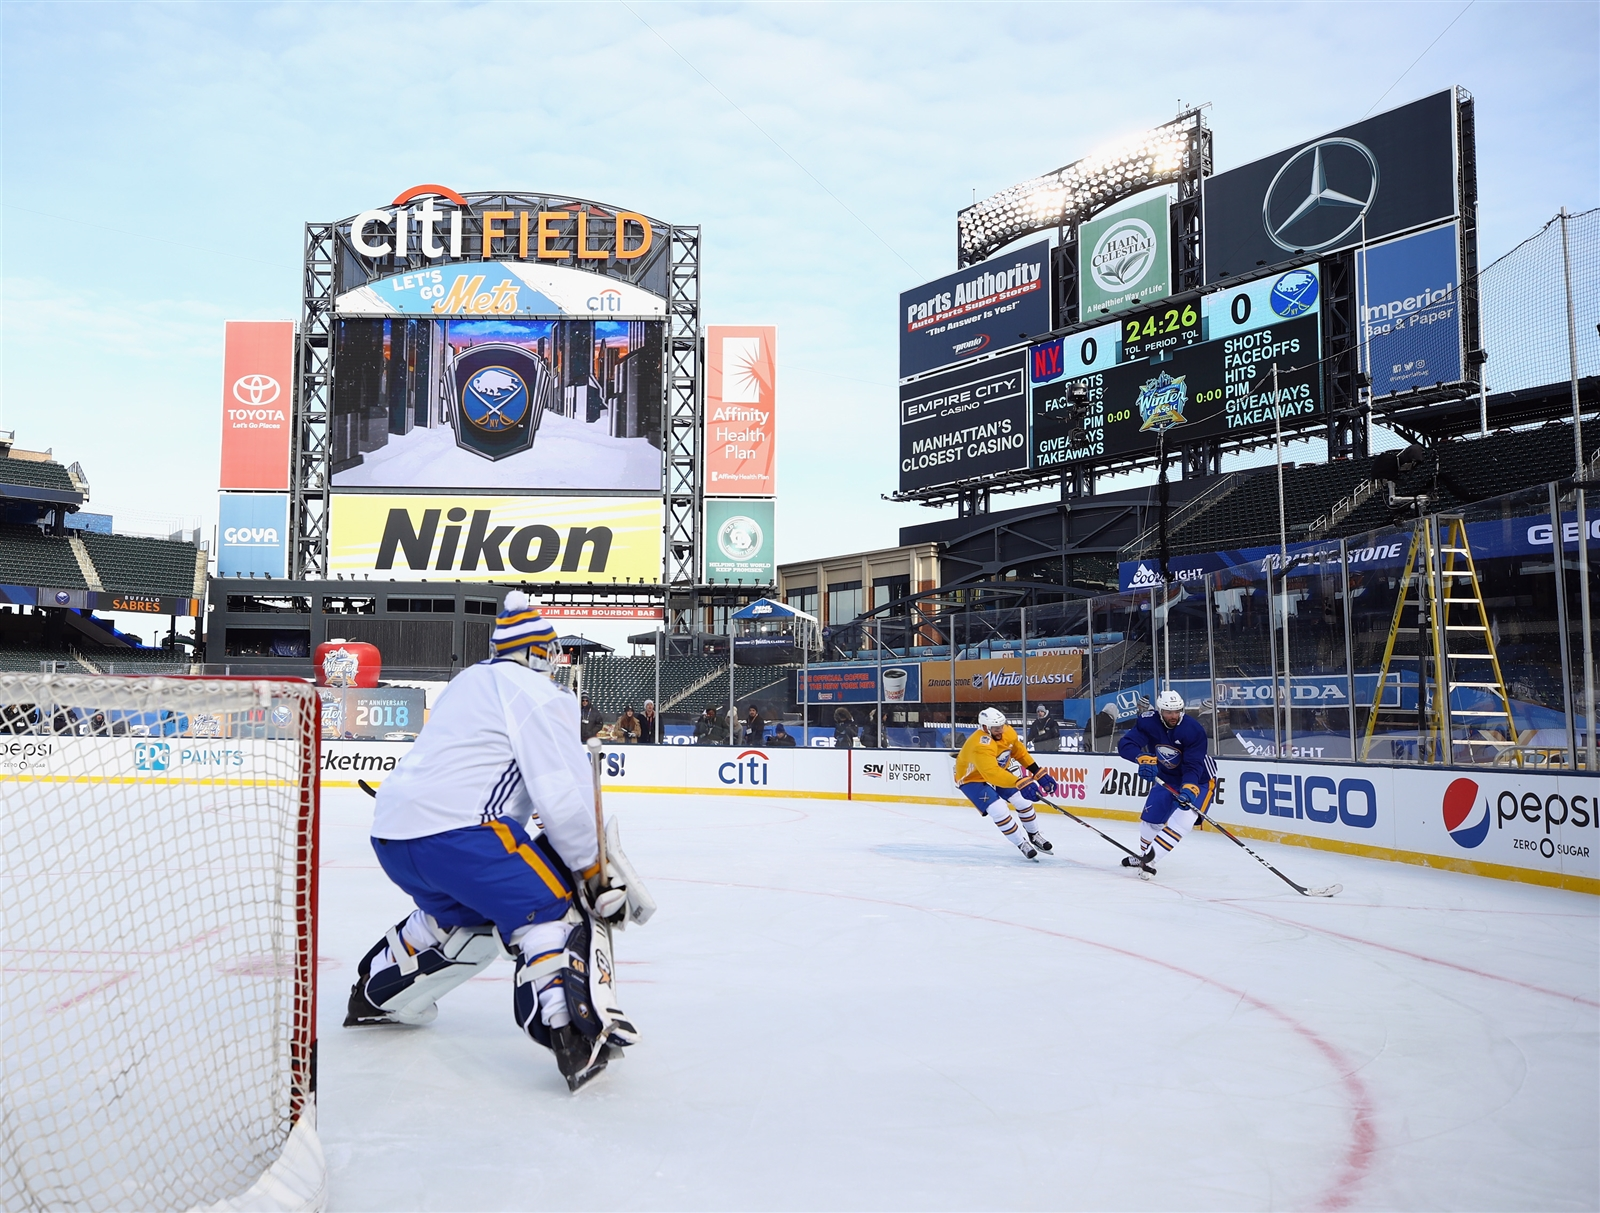 The Buffalo Sabres practice at Citi Field on Dec. 31, 2017, at Citi Field in Queens. The team will take part in the 2018 Bridgestone NHL Winter Classic on New Year's Day.